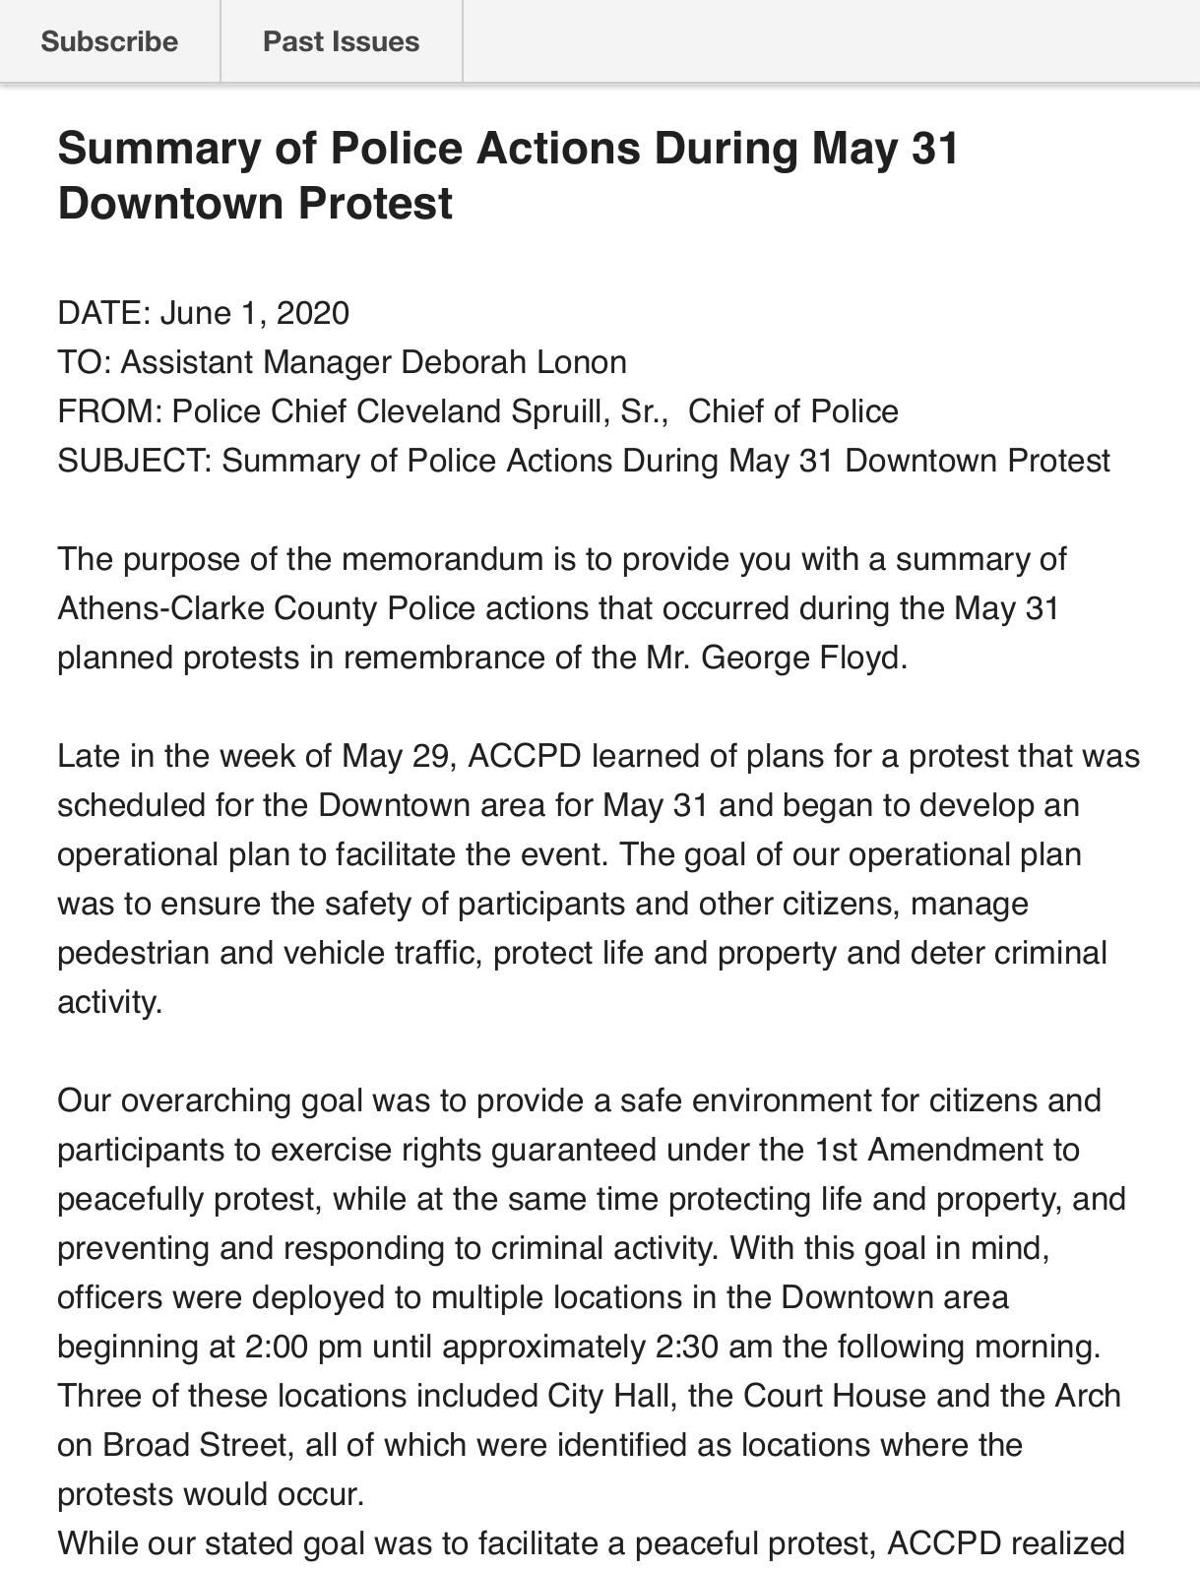 Summary of Police Actions During May 31 Downtown Protest.pdf (73.89 KiB)